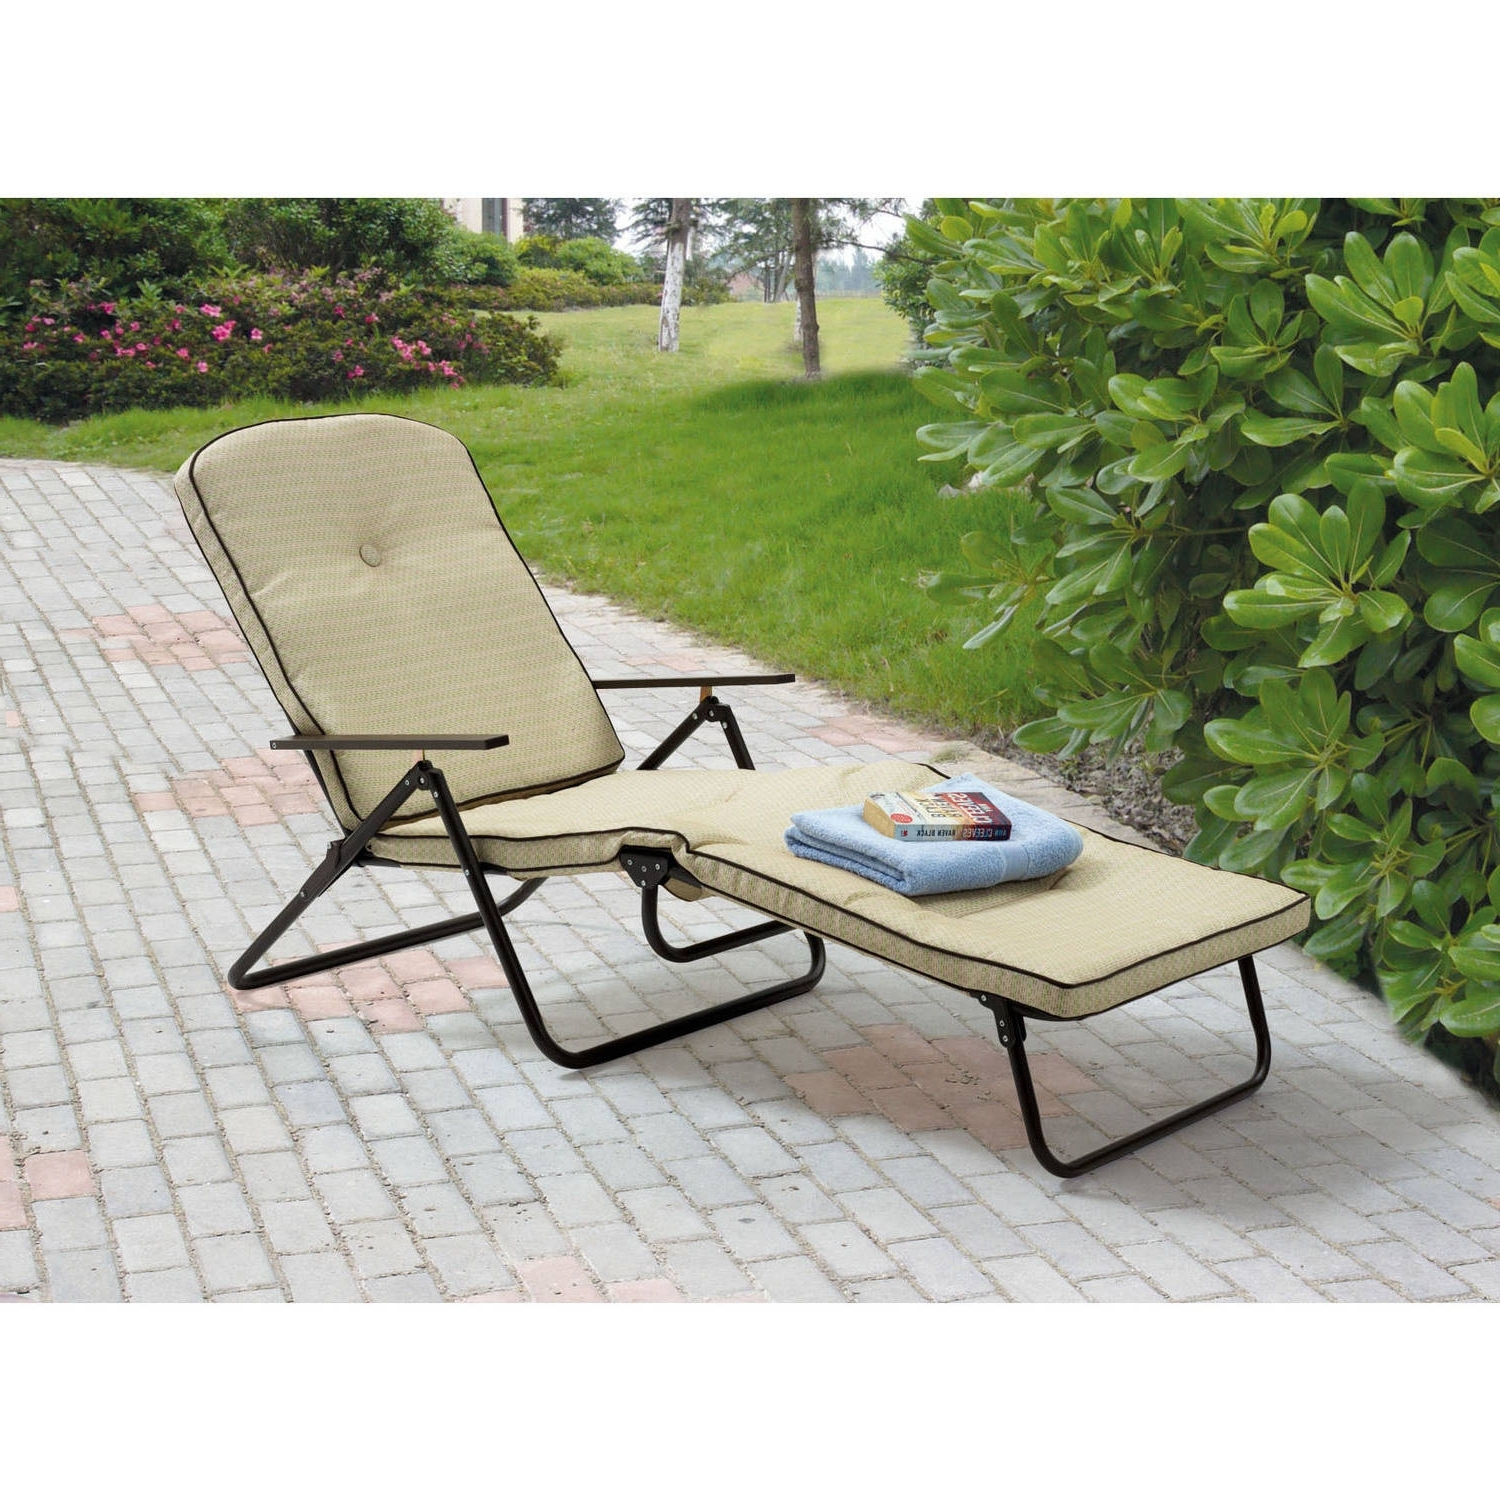 2018 Mainstays Sand Dune Outdoor Padded Folding Chaise Lounge, Tan For Folding Chaise Lounges (View 11 of 15)